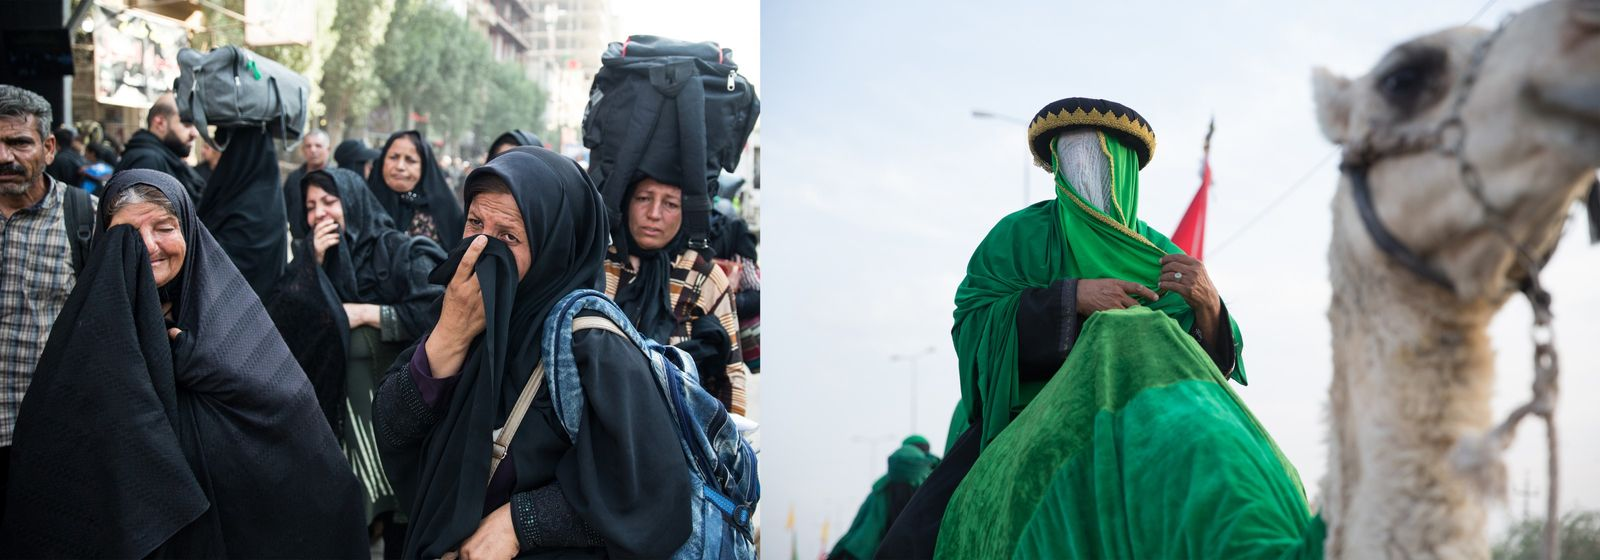 Arba'een draws people to Karbala from great distances–some dressed in tribute to Husayn, others in black. ...